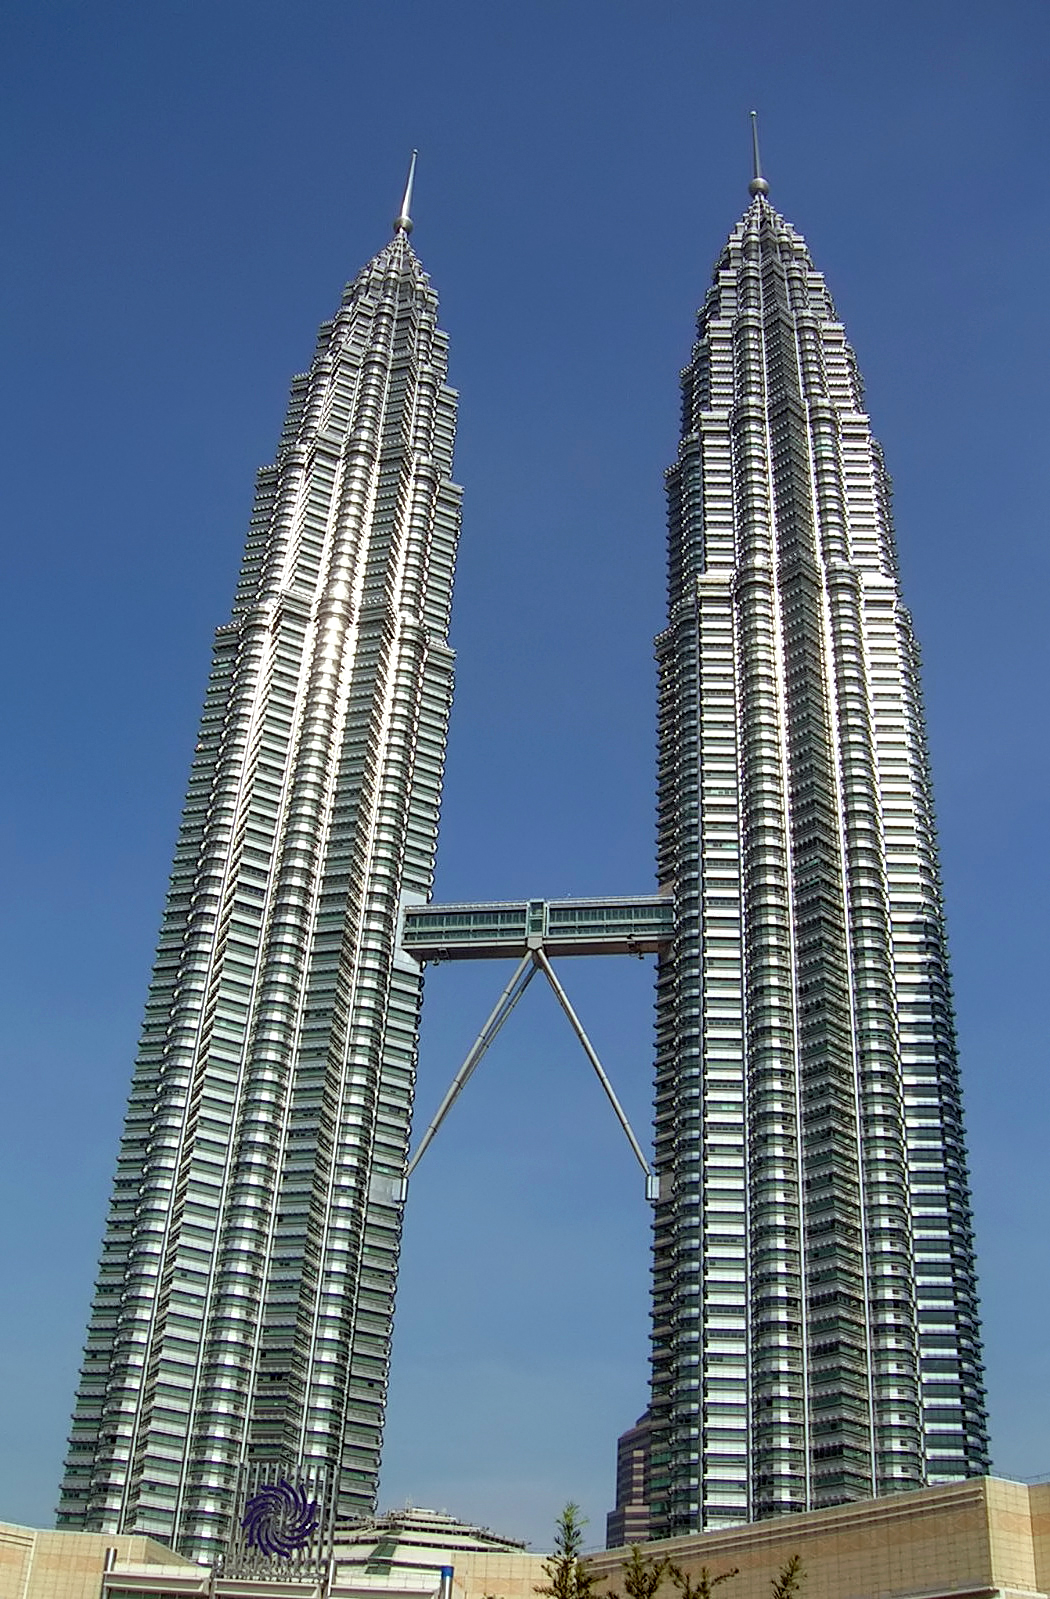 Tallest buildings in the world – top 10 list